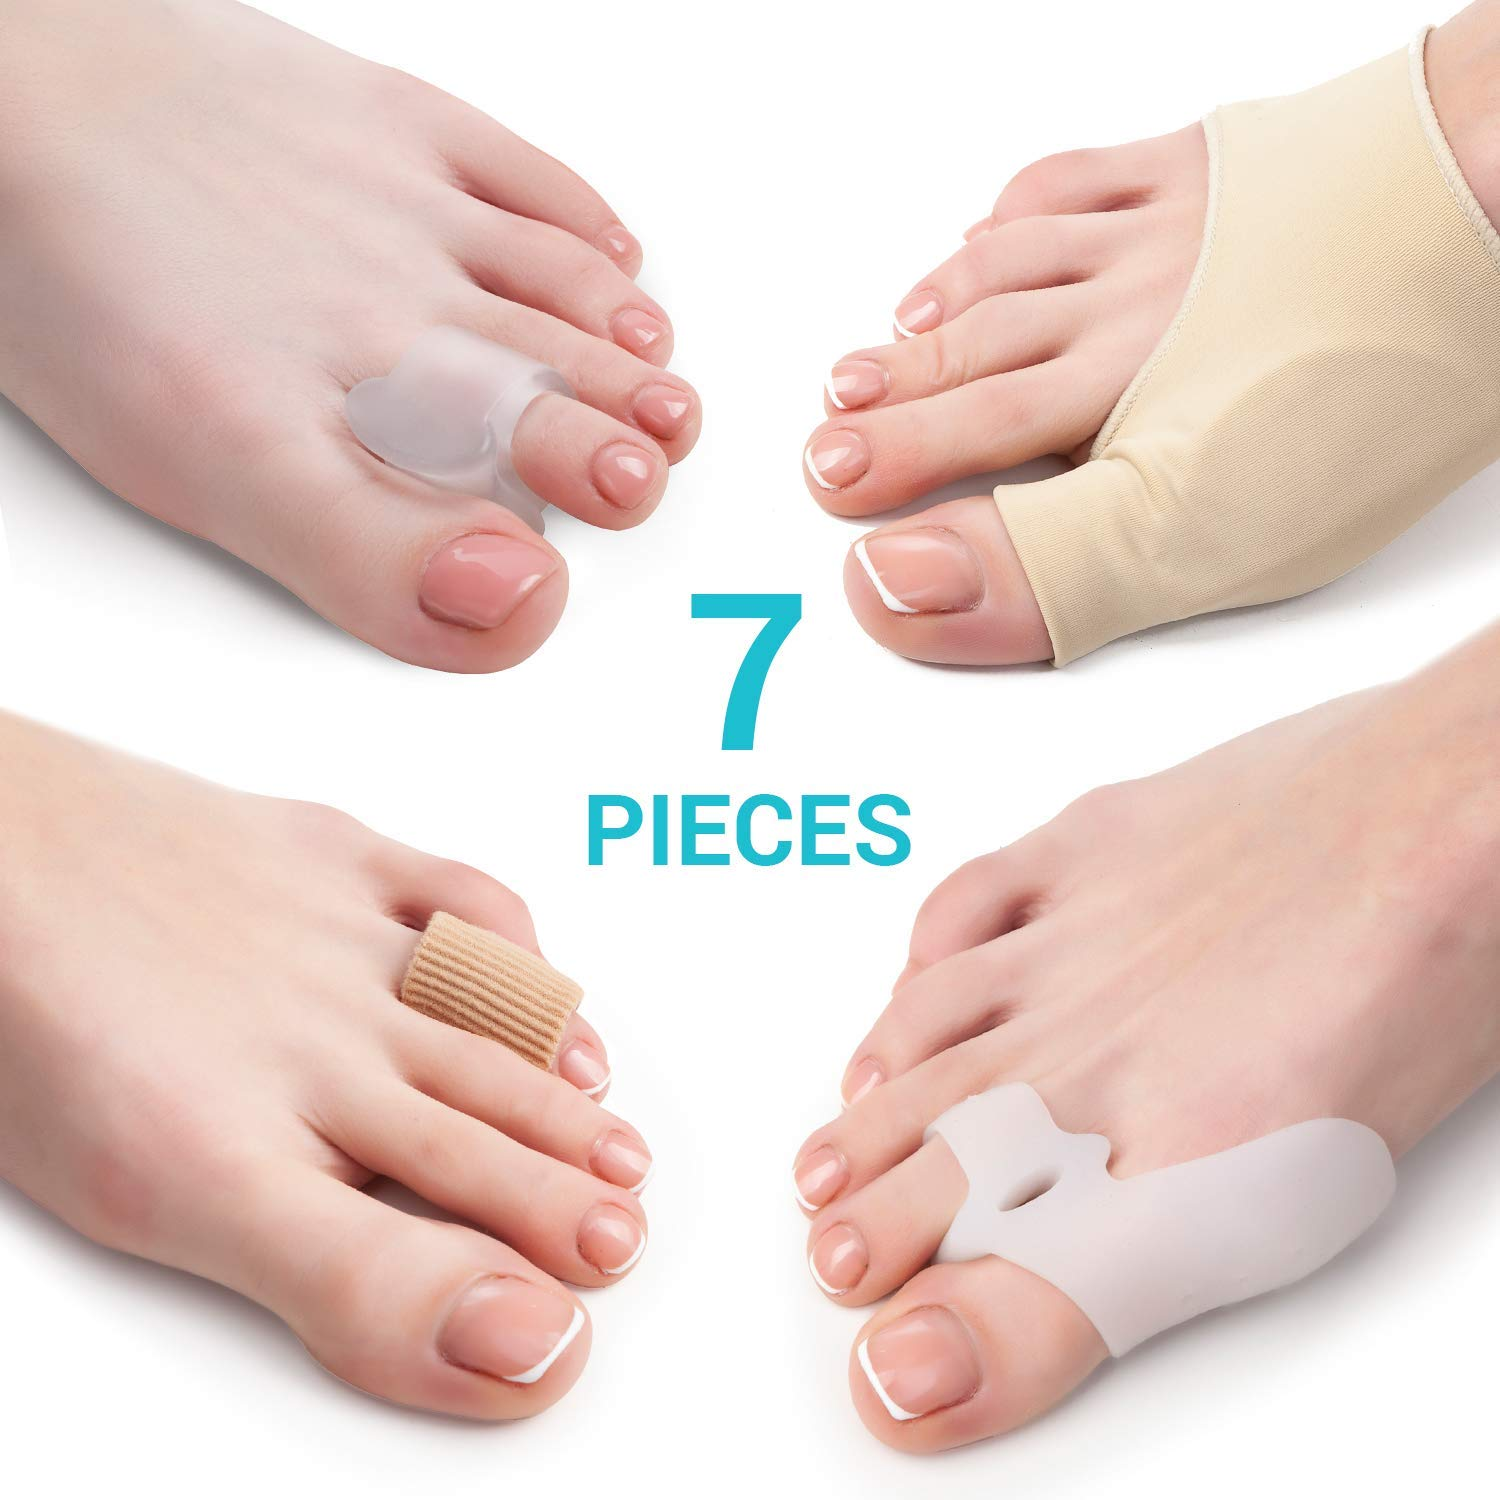 42ca1af0ada Bunion Corrector and Bunion Relief Kit - 7 Piece Set - 2 Sleeves with Gel  Pad - 2 Toes Spacers...